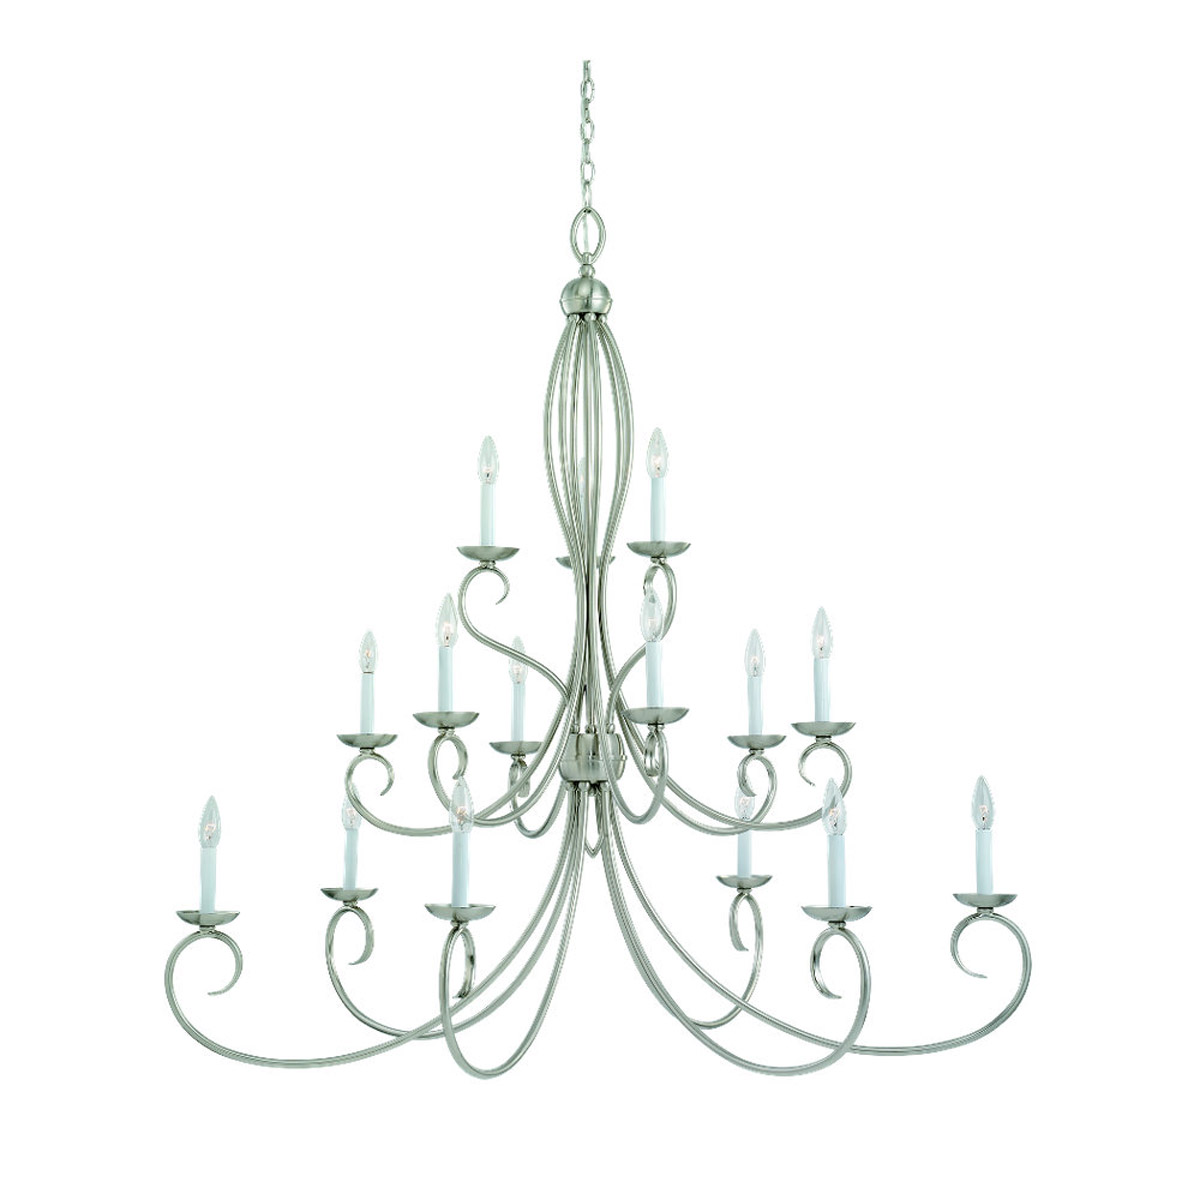 Sea Gull Lighting Pemberton 15 Light Chandelier in Brushed Nickel 31076-962